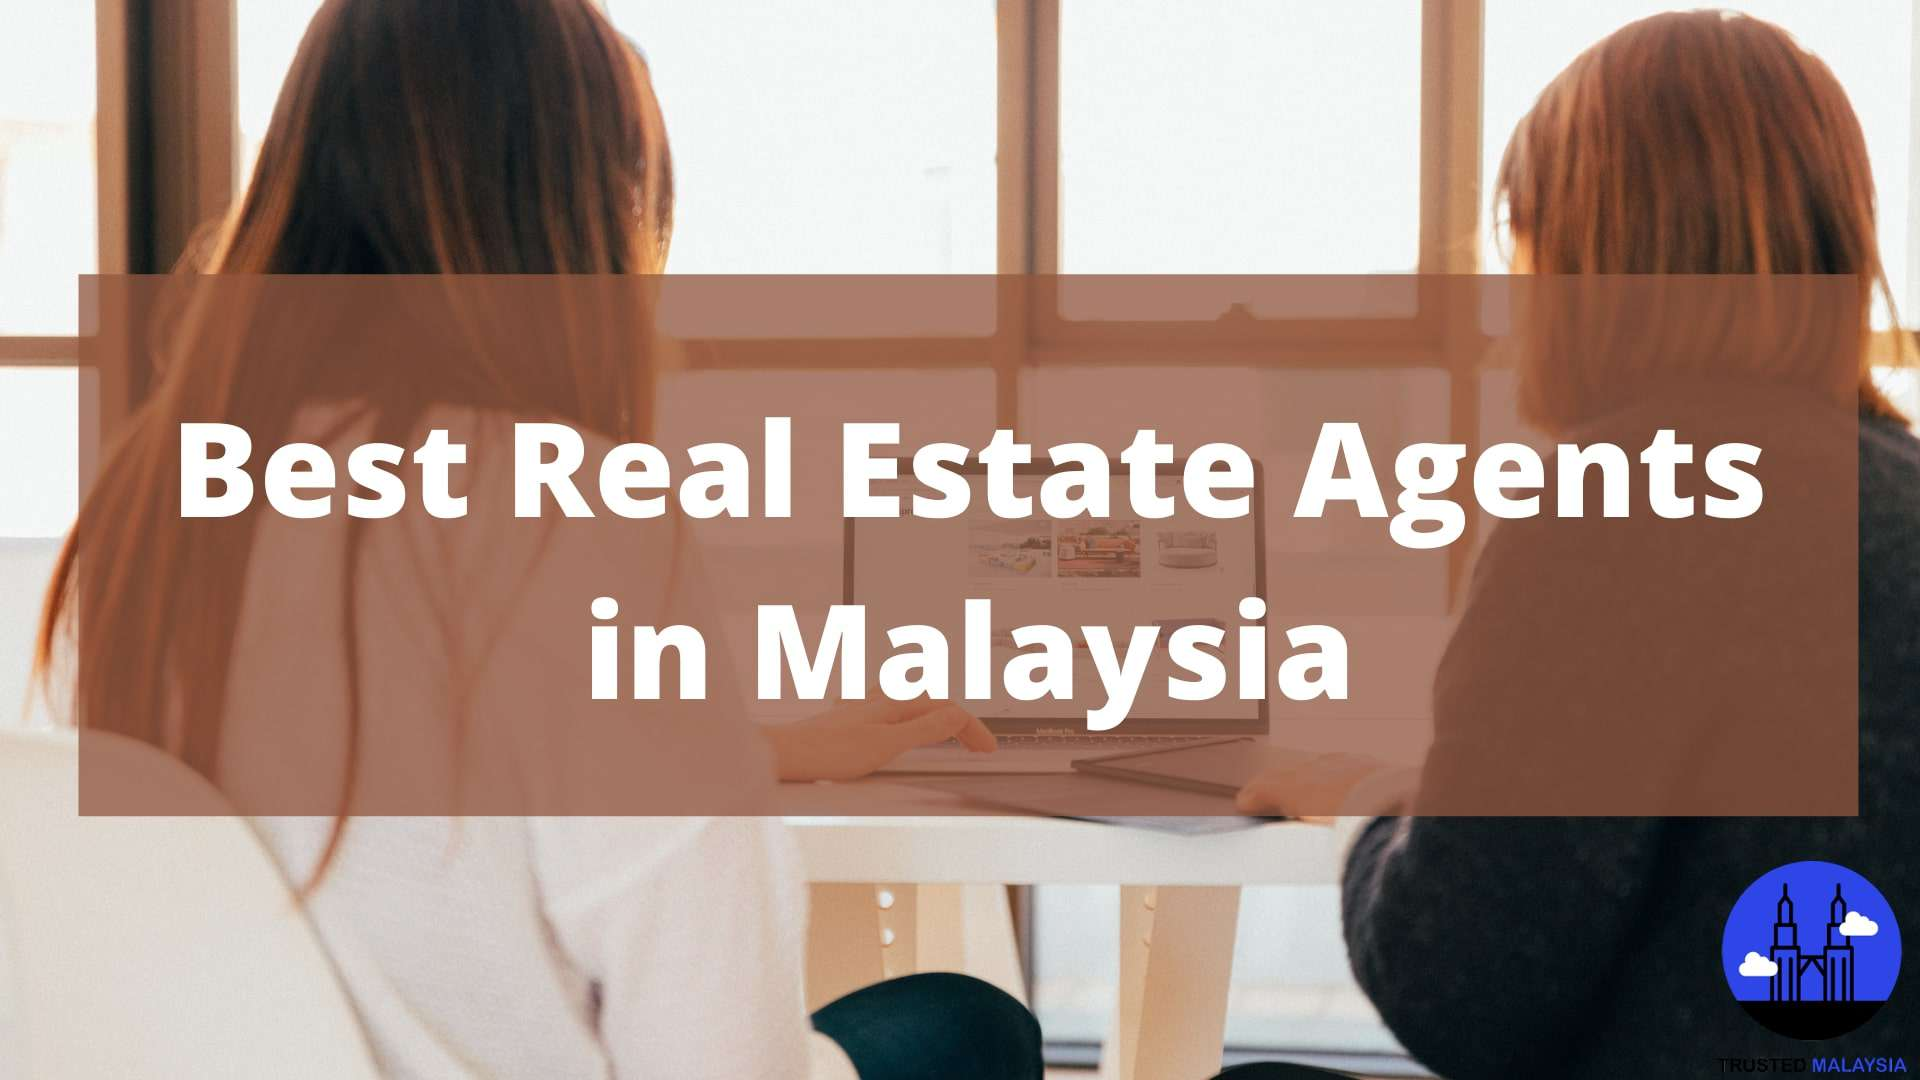 Best Real Estate Agents in Malaysia